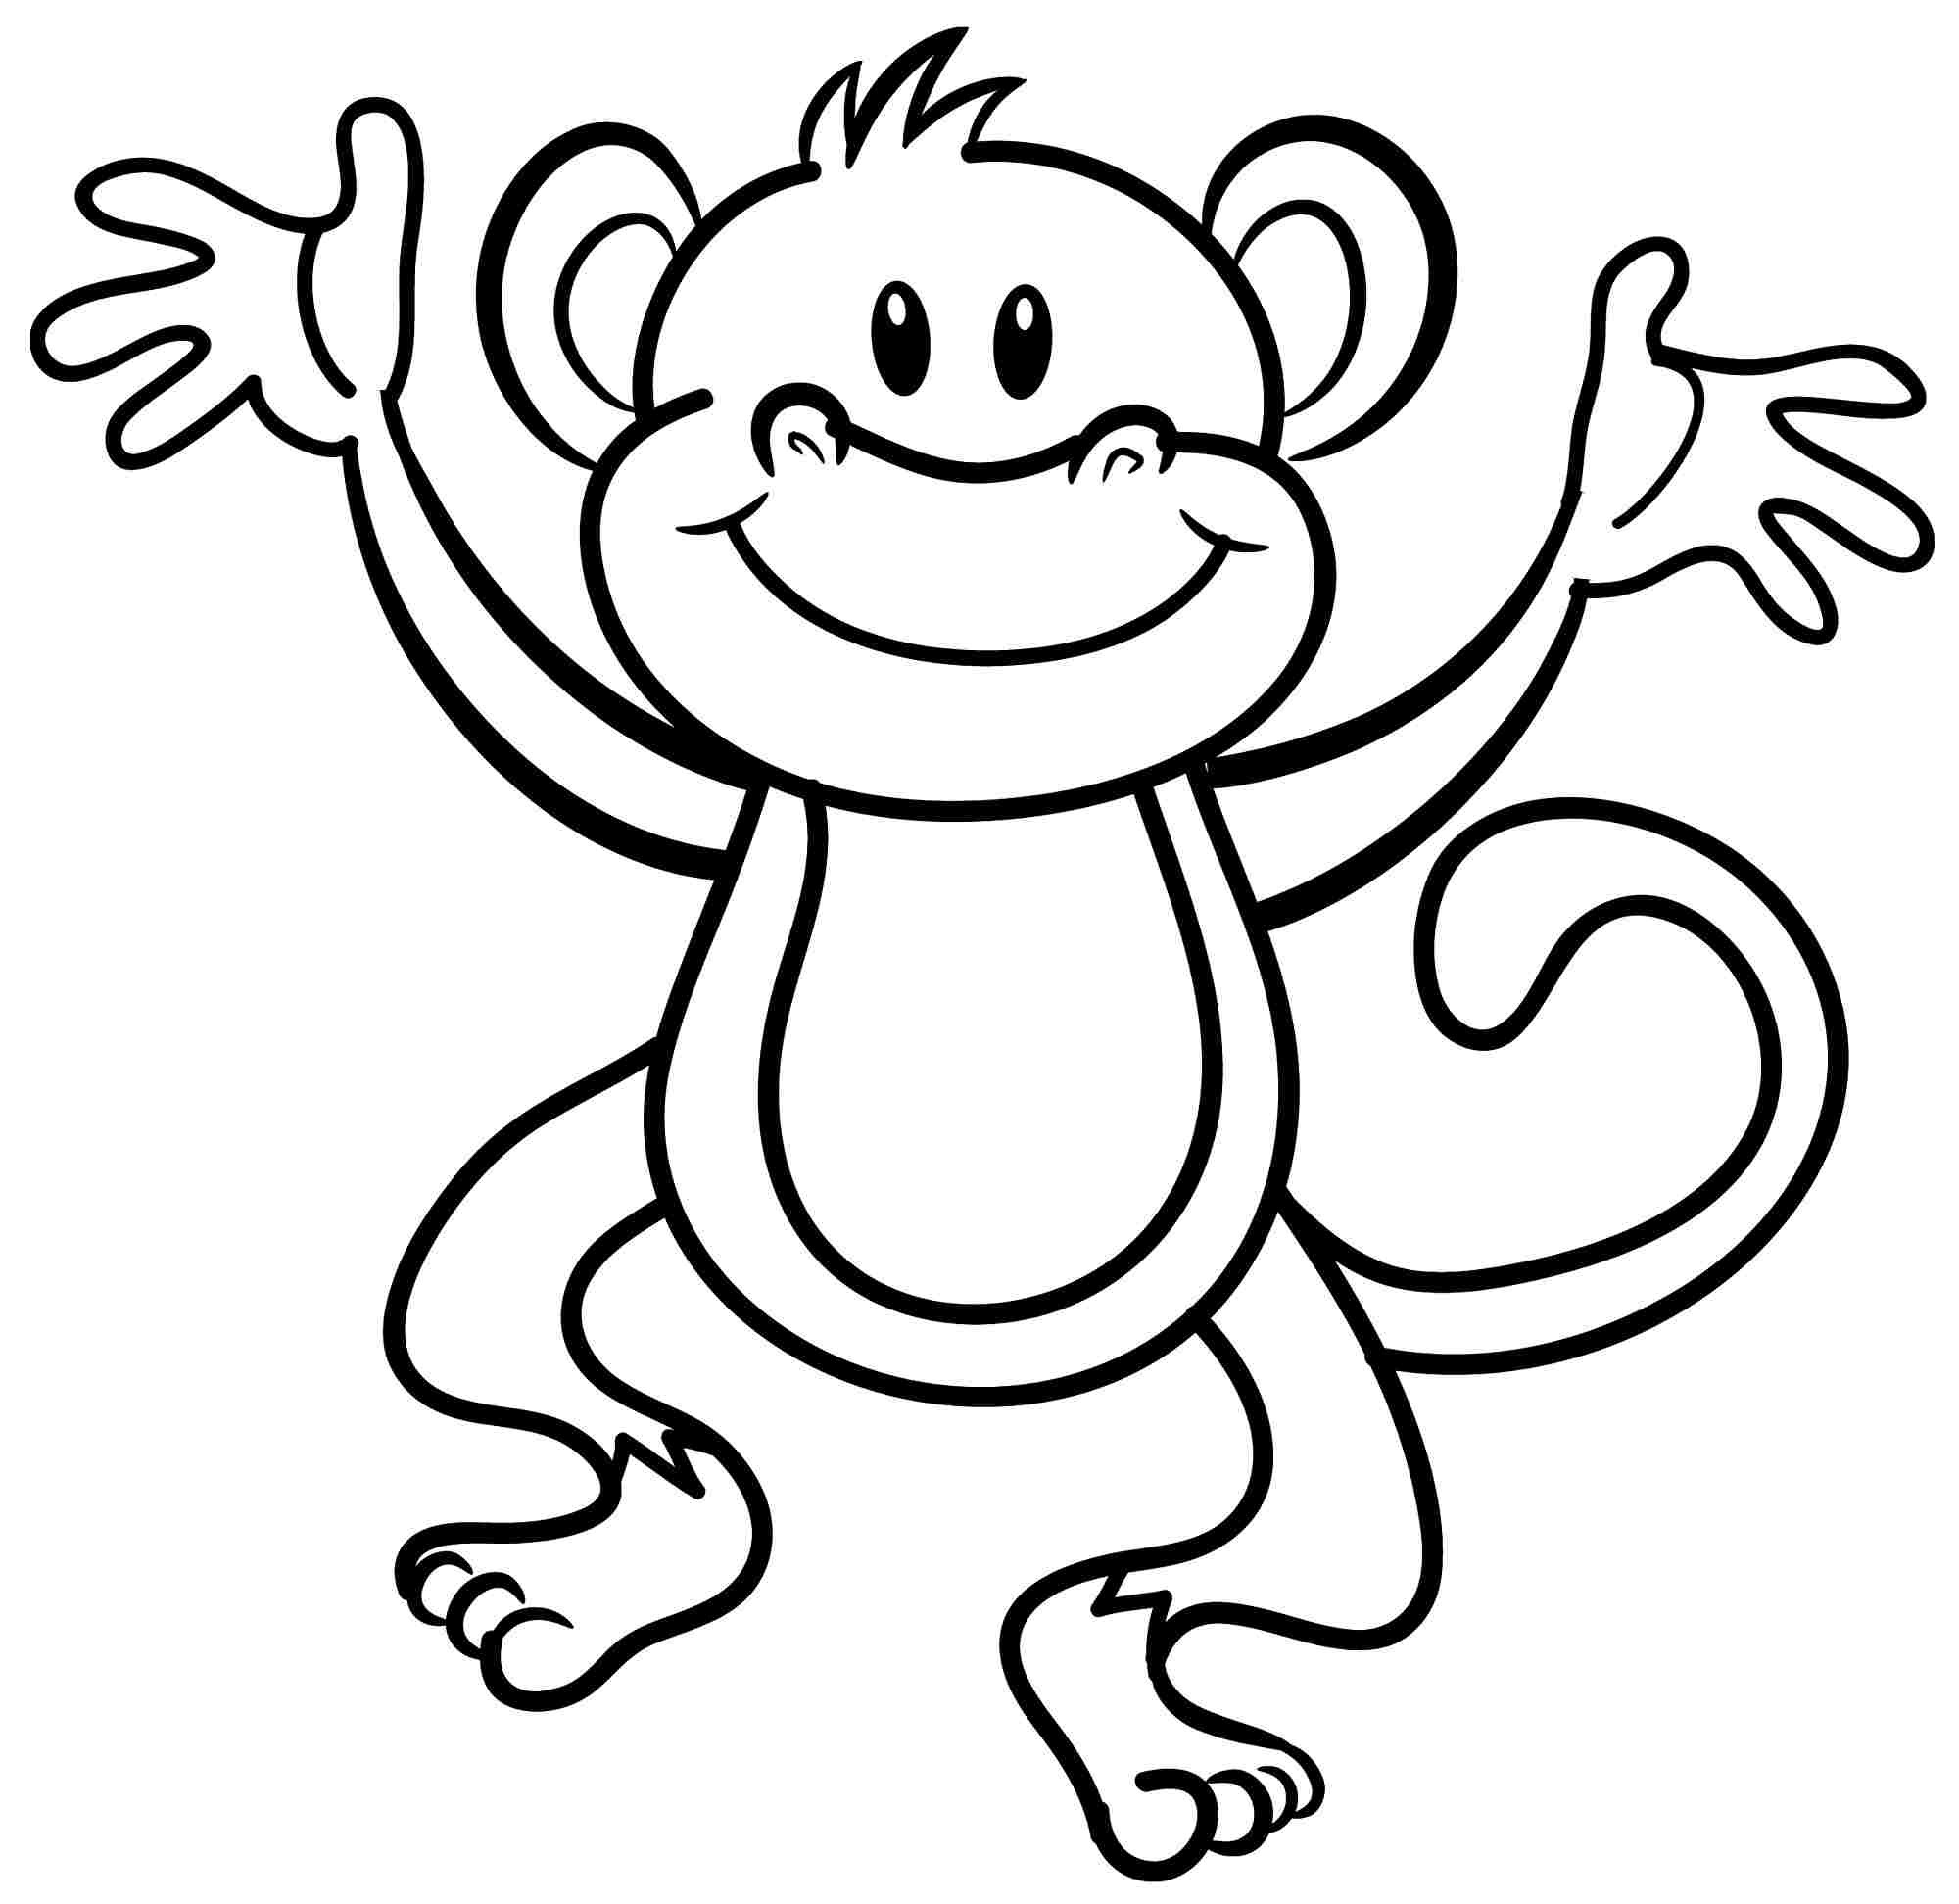 2000x1944 Coloring Pages Of Monkeys Tixac